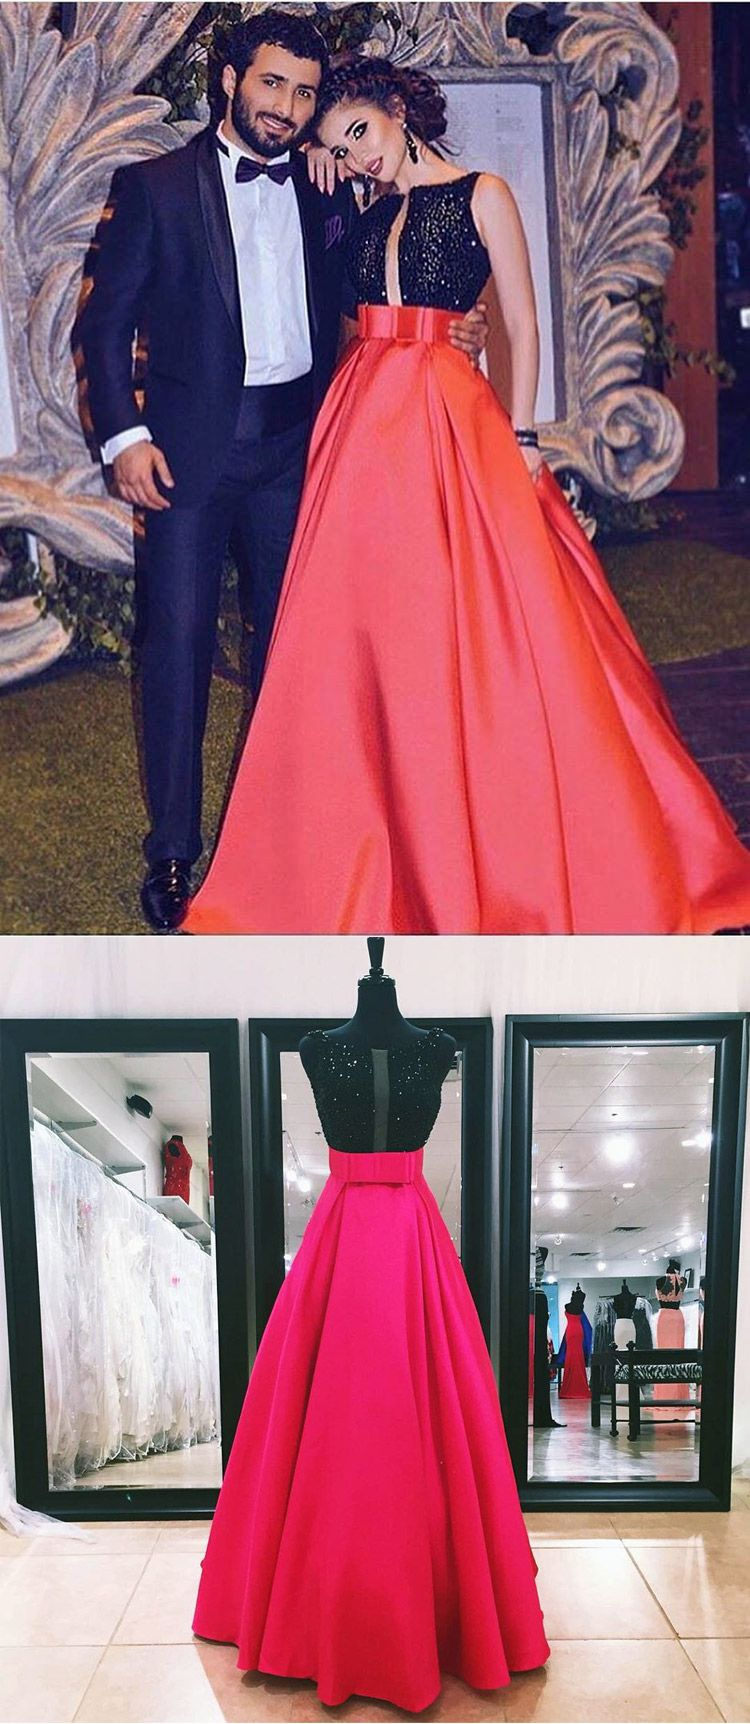 Aline long black top and red skirt prom dress evening gown